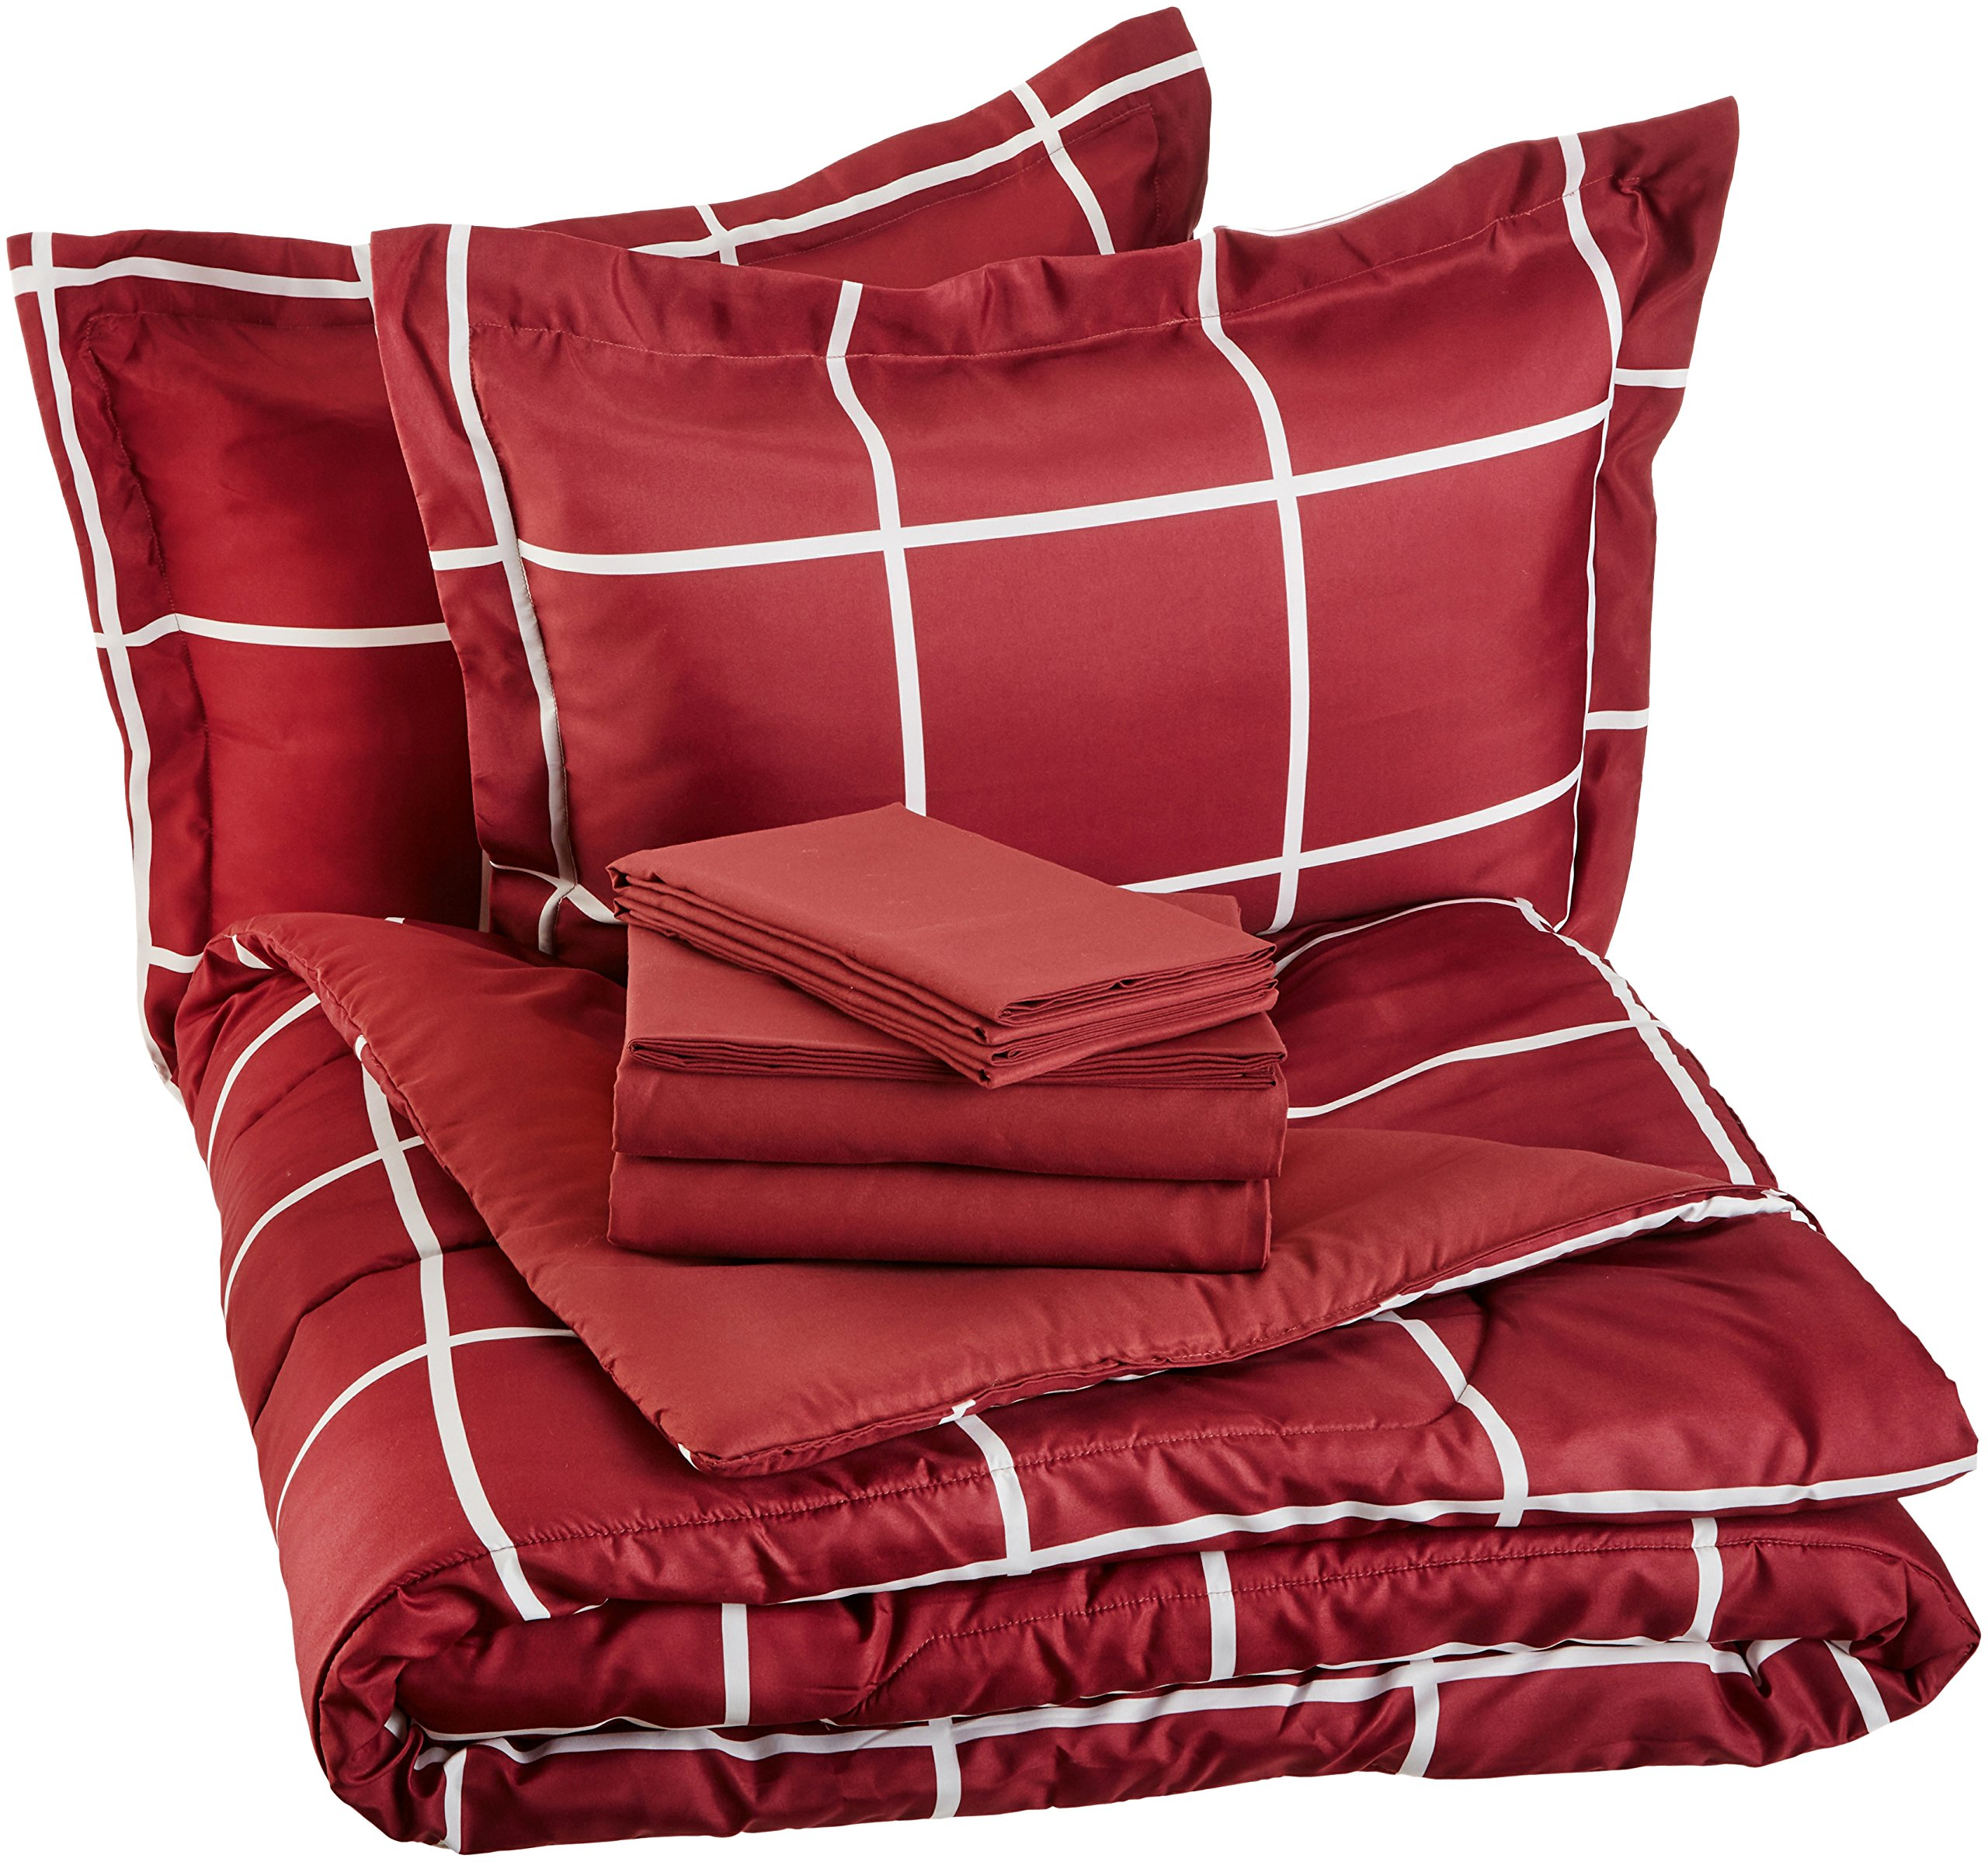 AmazonBasics 7-Piece Bed-In-A-Bag - Full/Queen, Burgundy Simple Plaid